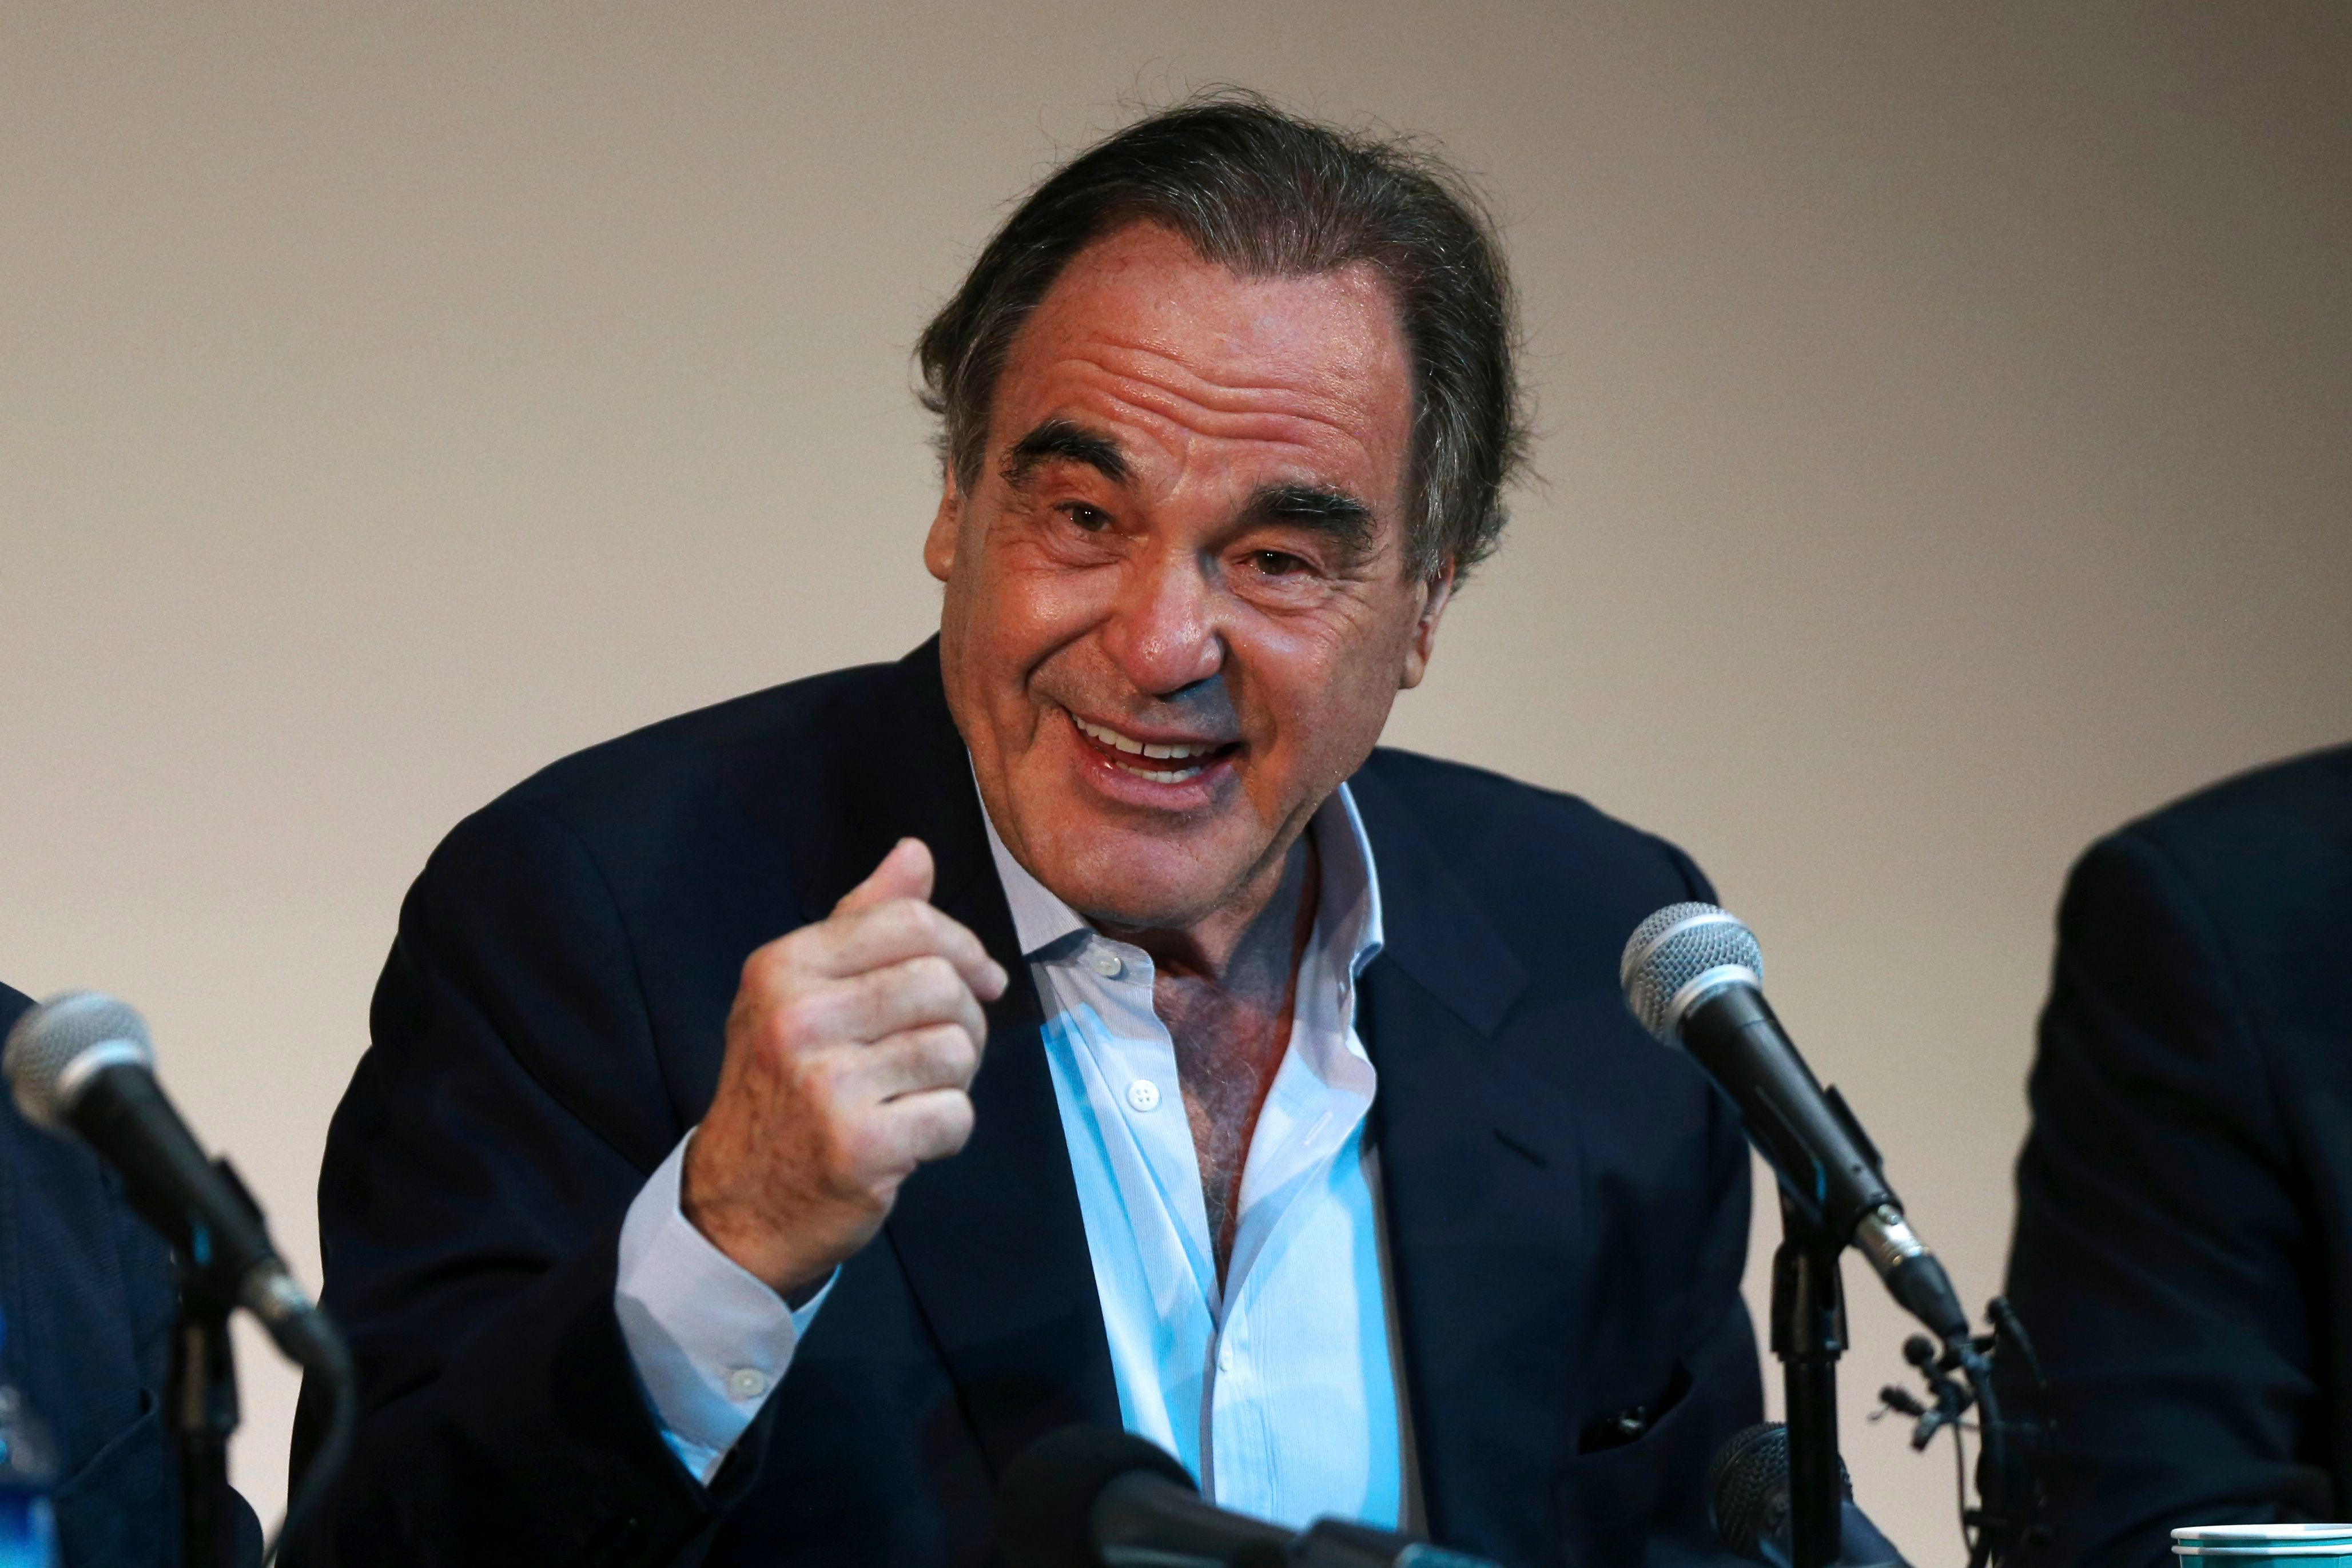 American movie director Oliver Stone speaks during a news conference in the Fajr International Film Festival in Tehran, IranPeople Oliver Stone, Tehran, Iran - 25 Apr 2018